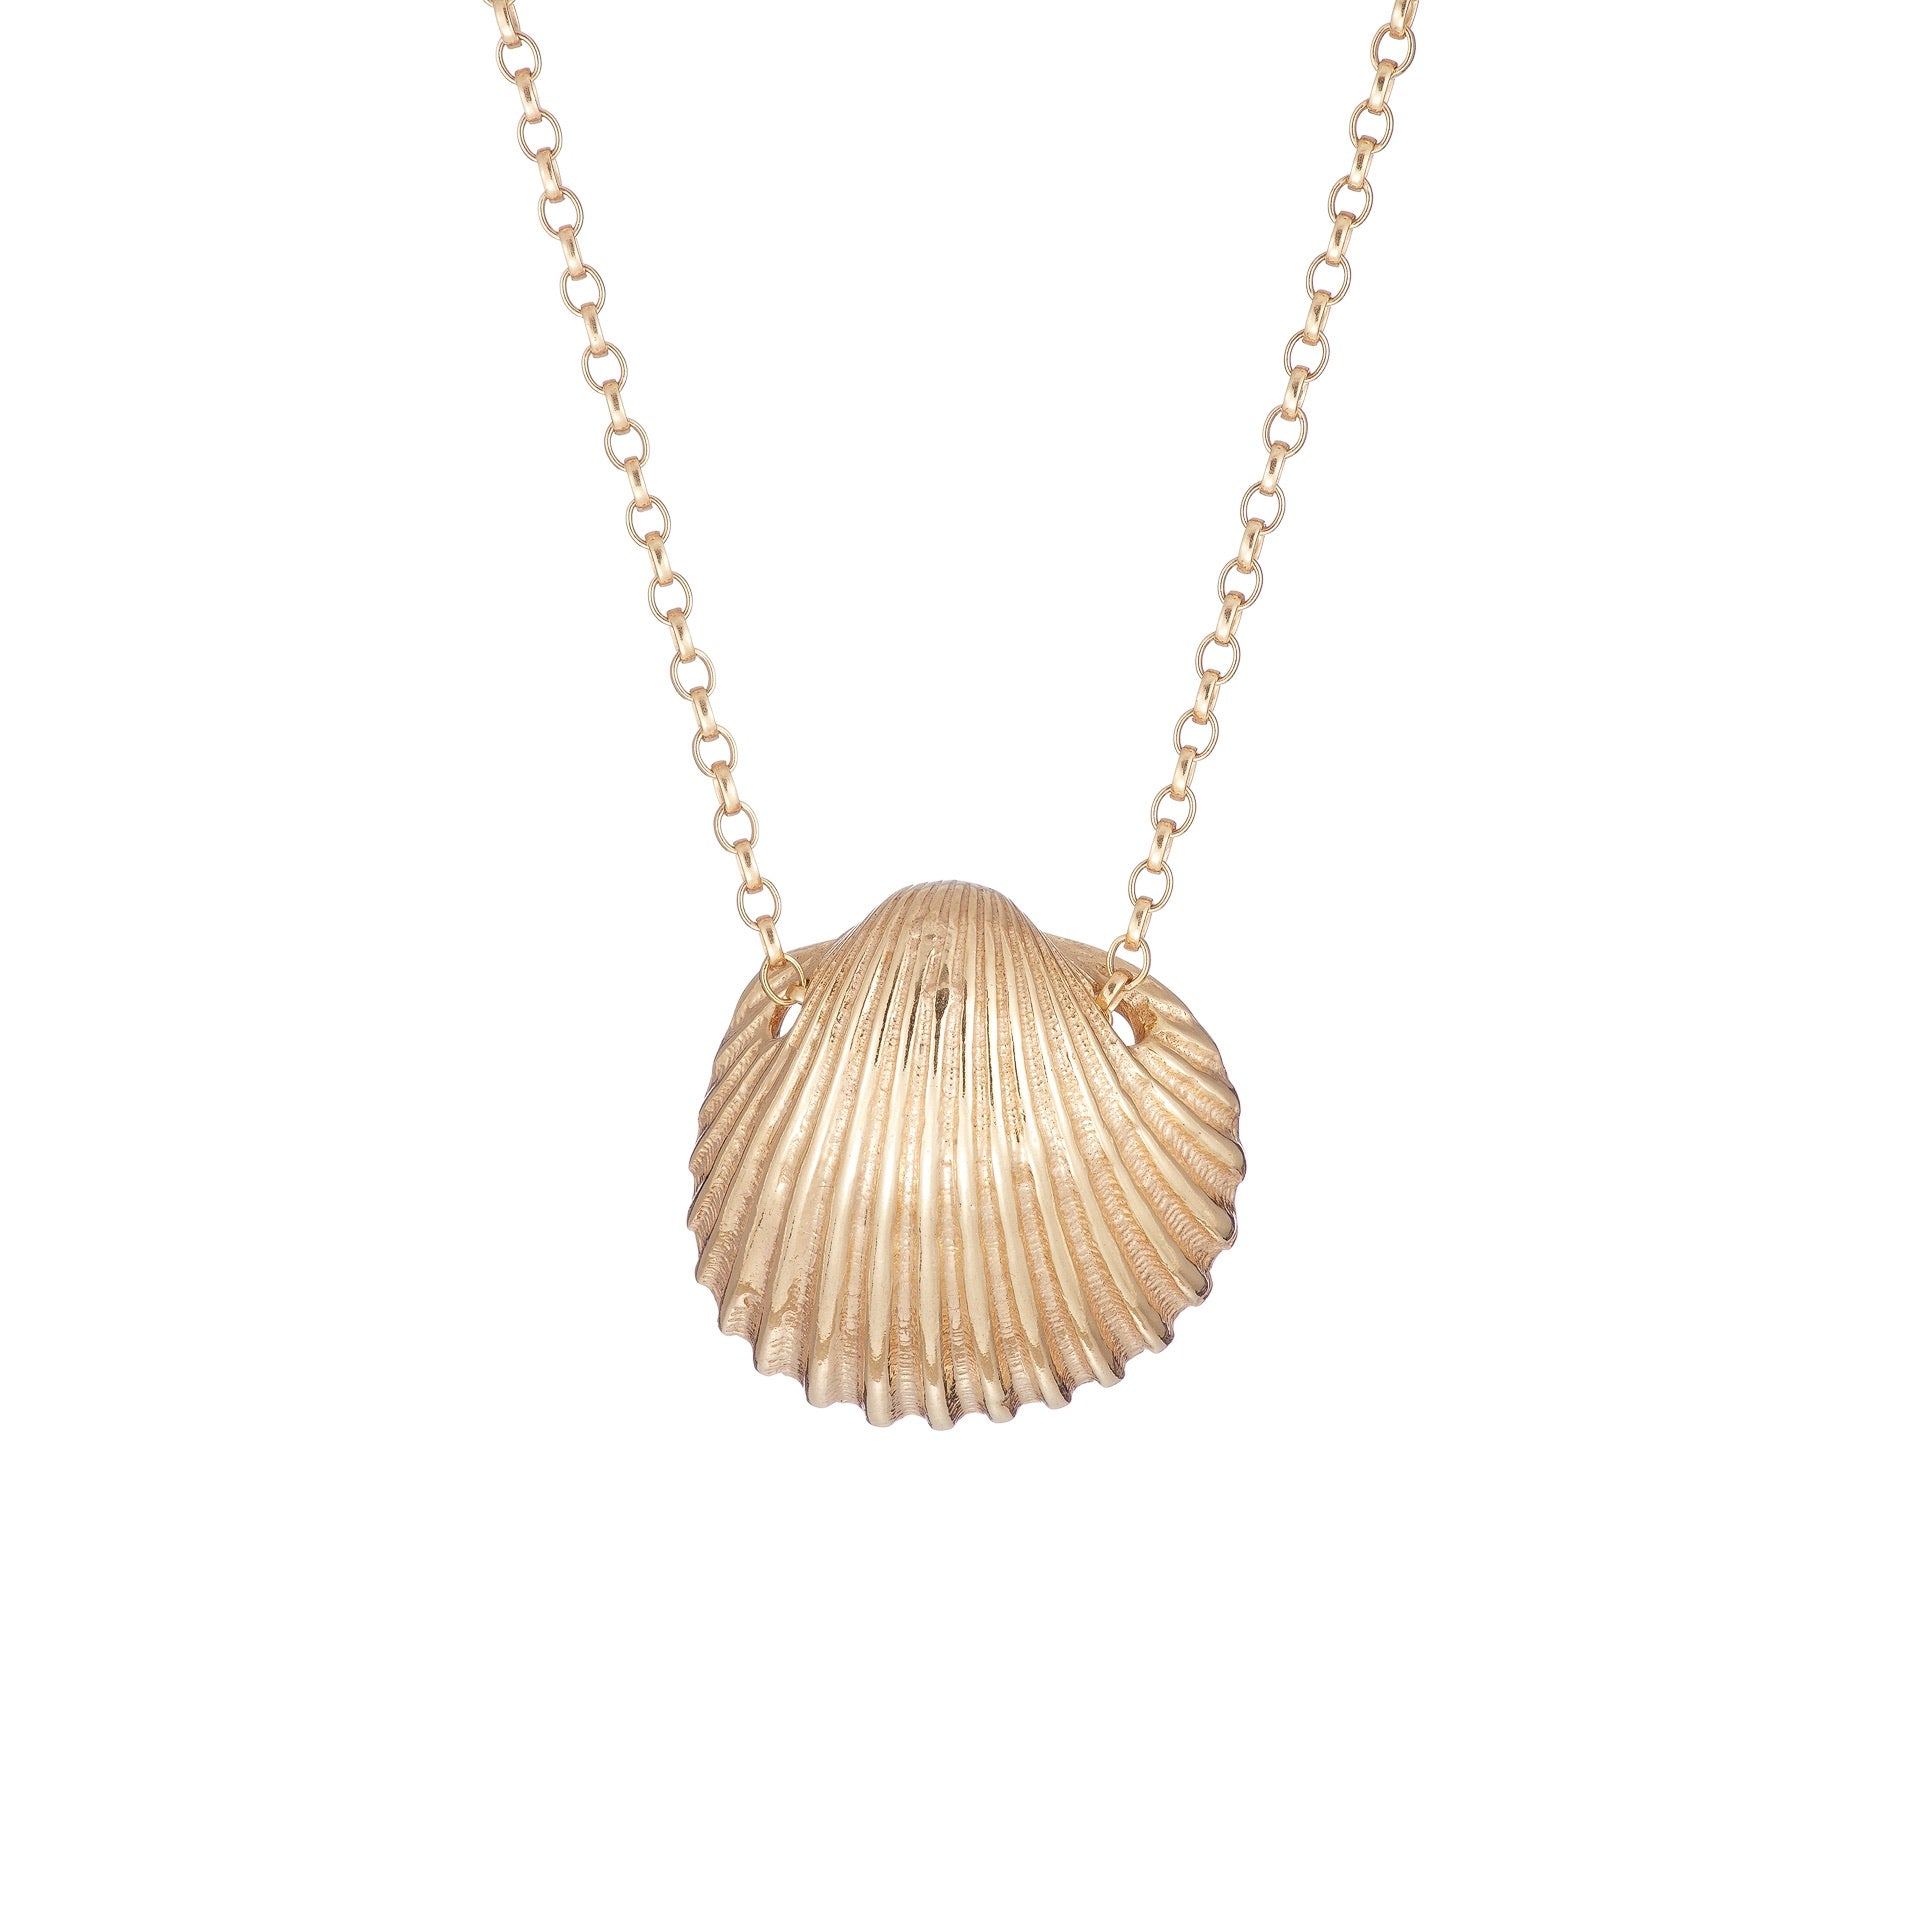 COCKLE SHELL necklace, medium - gold plated